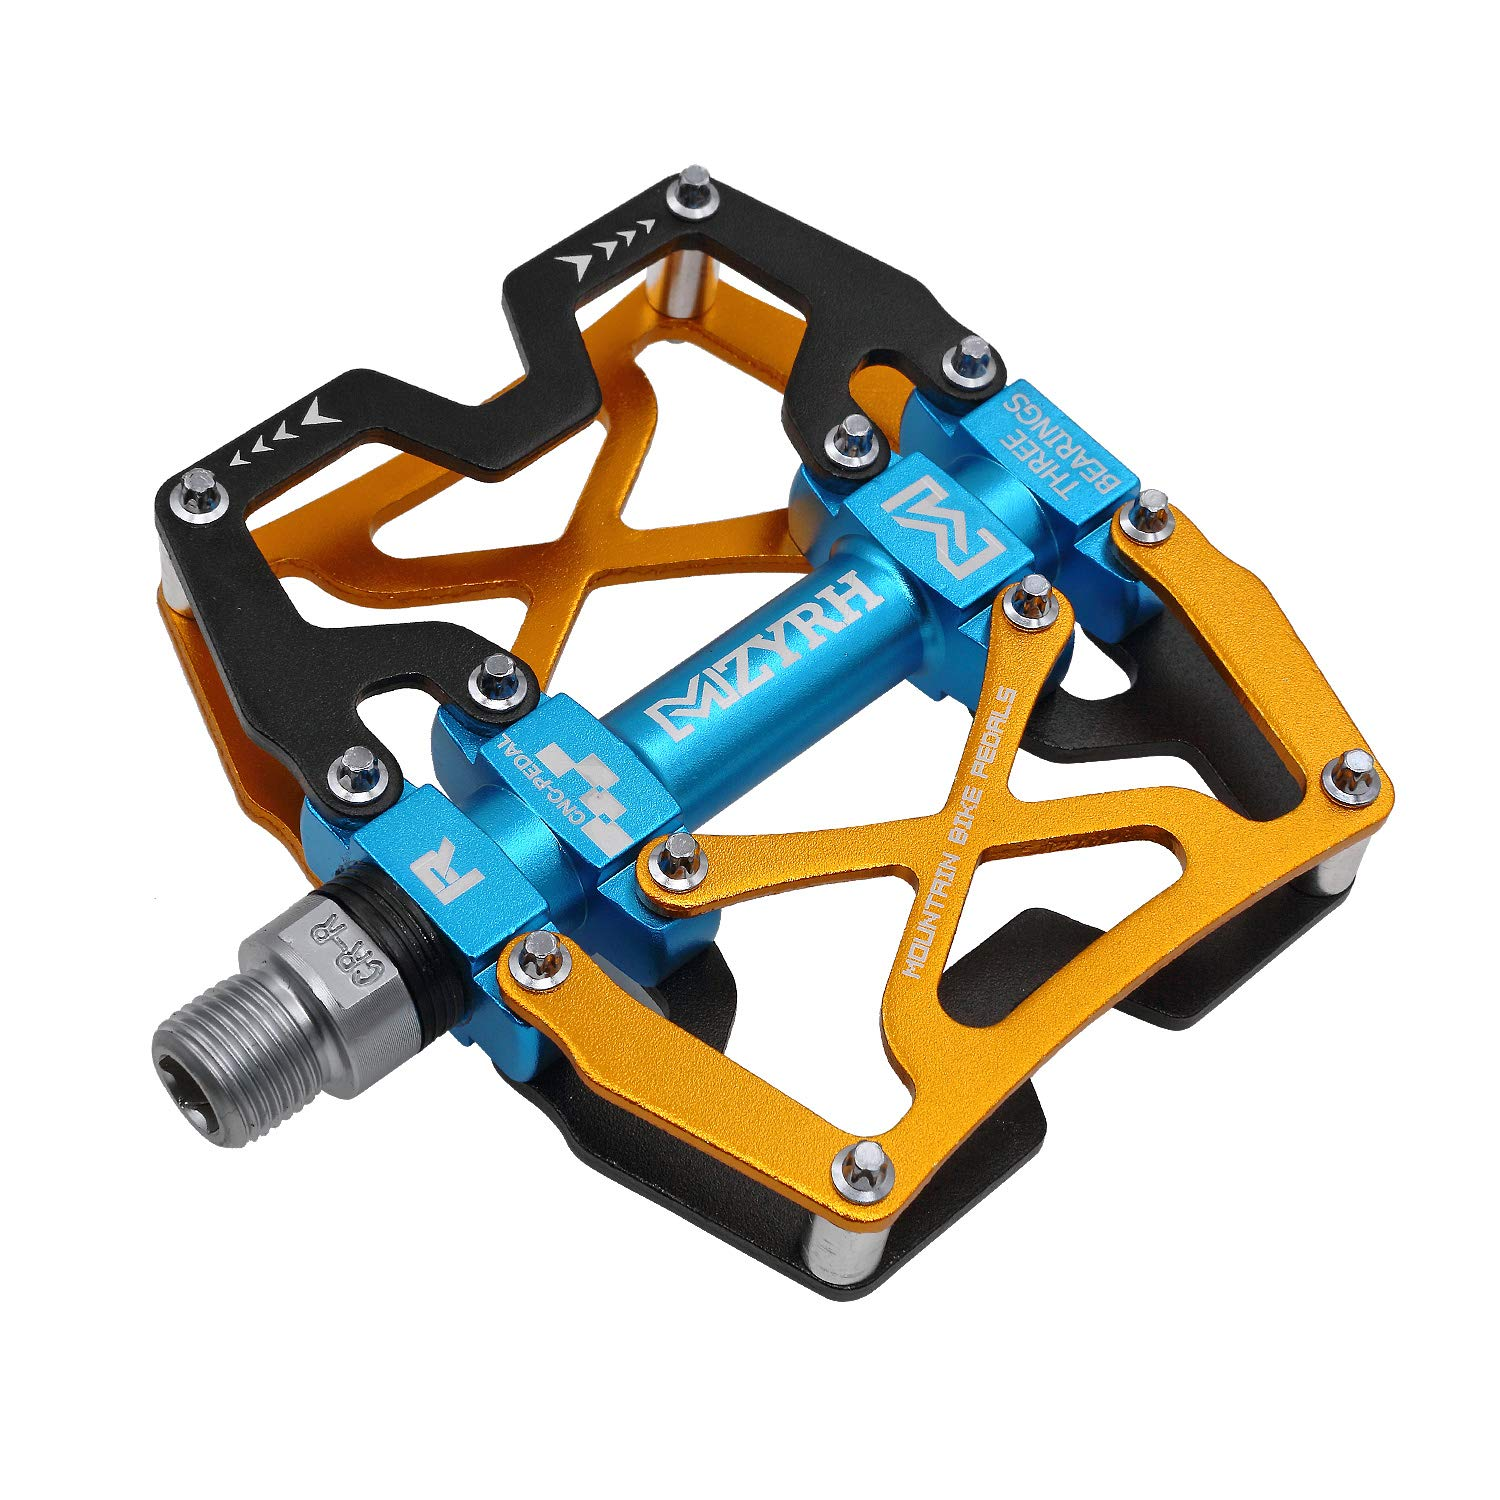 Mzyrh Mountain Bike Pedals, Ultra Strong Colorful CNC Machined 9/16'' Cycling Sealed 3 Bearing Pedals (Black Blue Yellow) by Mzyrh